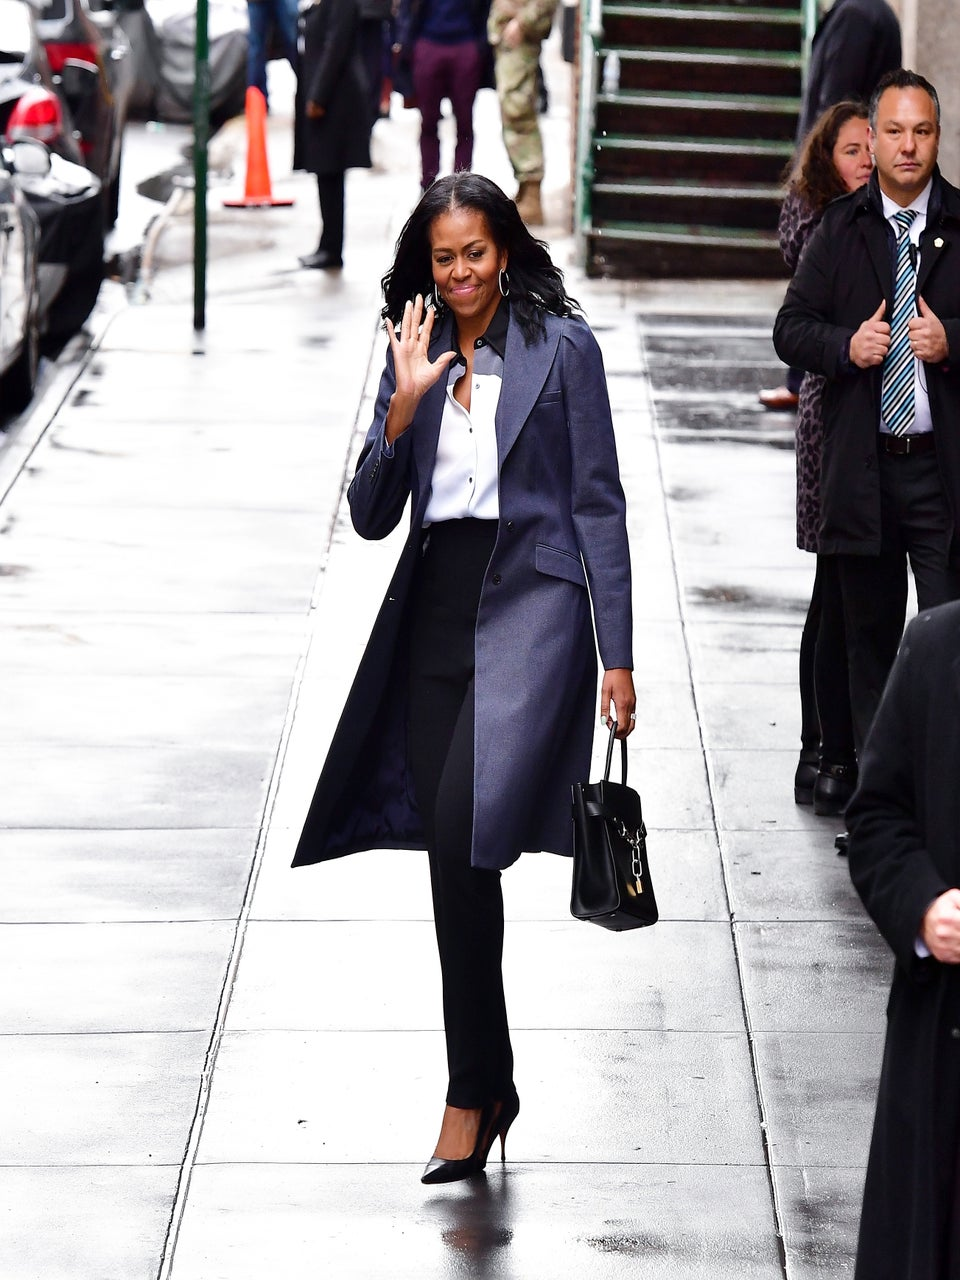 The Obamas Are Stunting Their Way Through NYC!